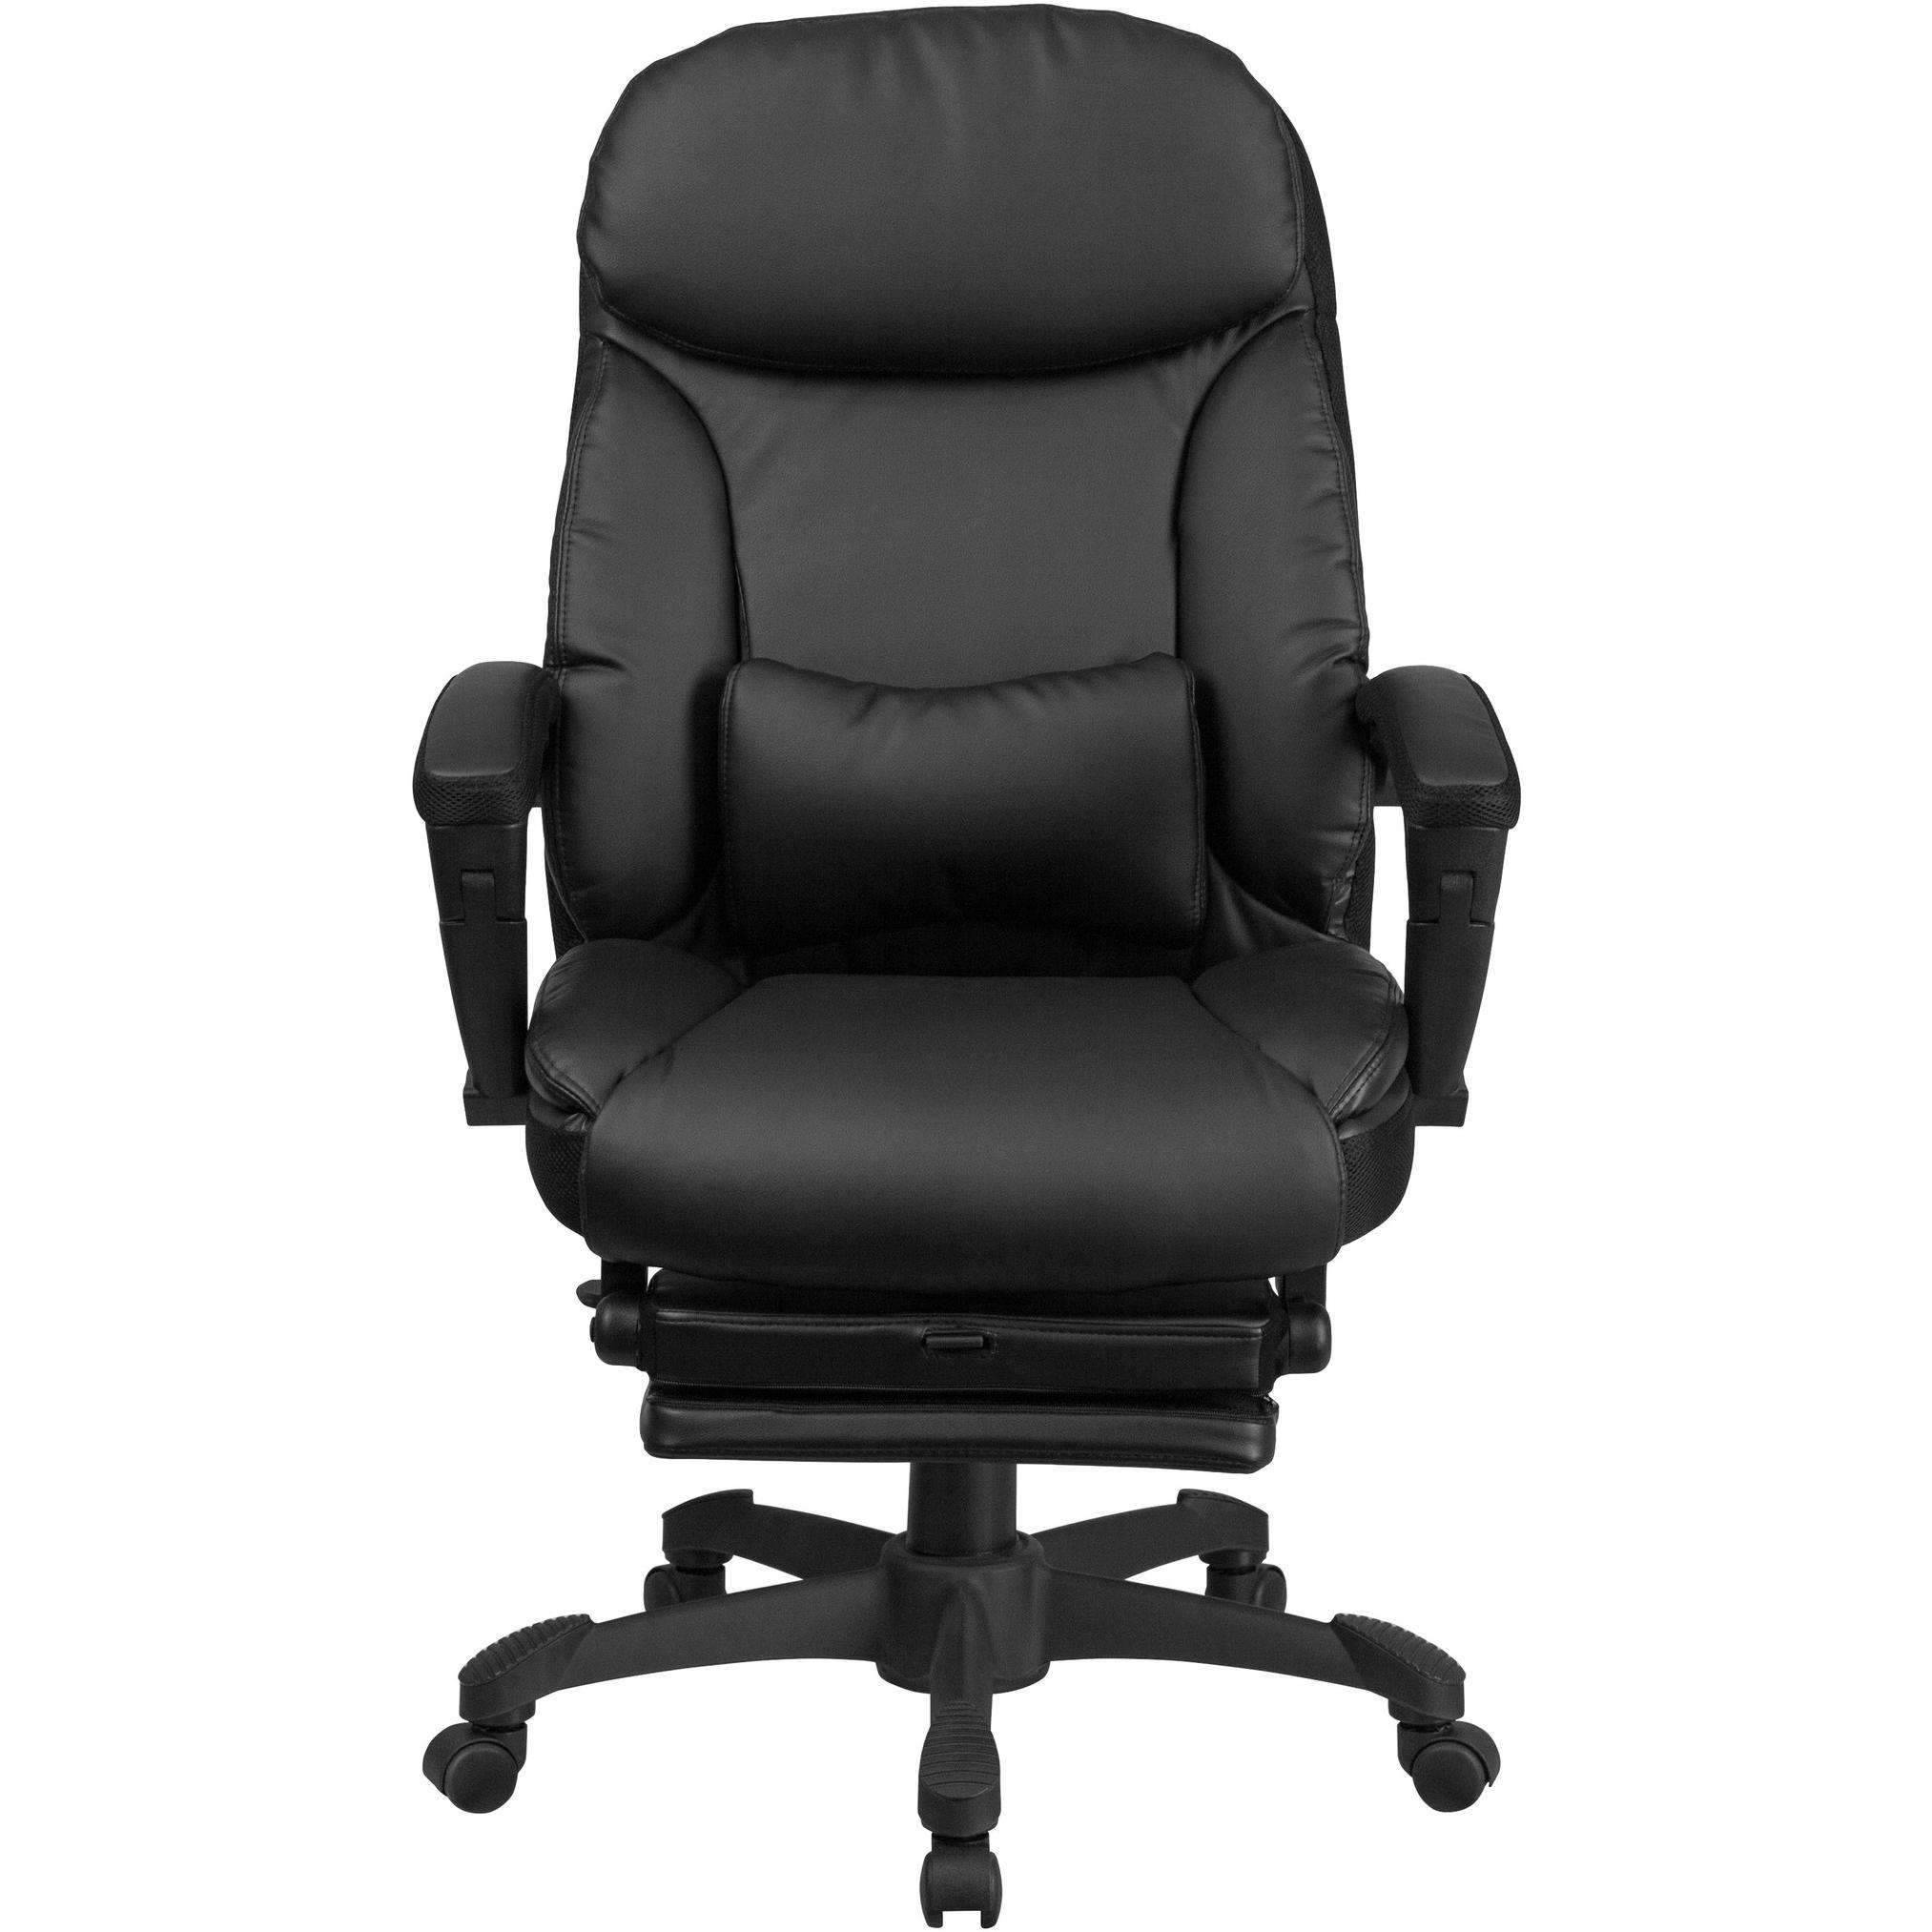 Black Reclining Swivel fice Chair With Armrests